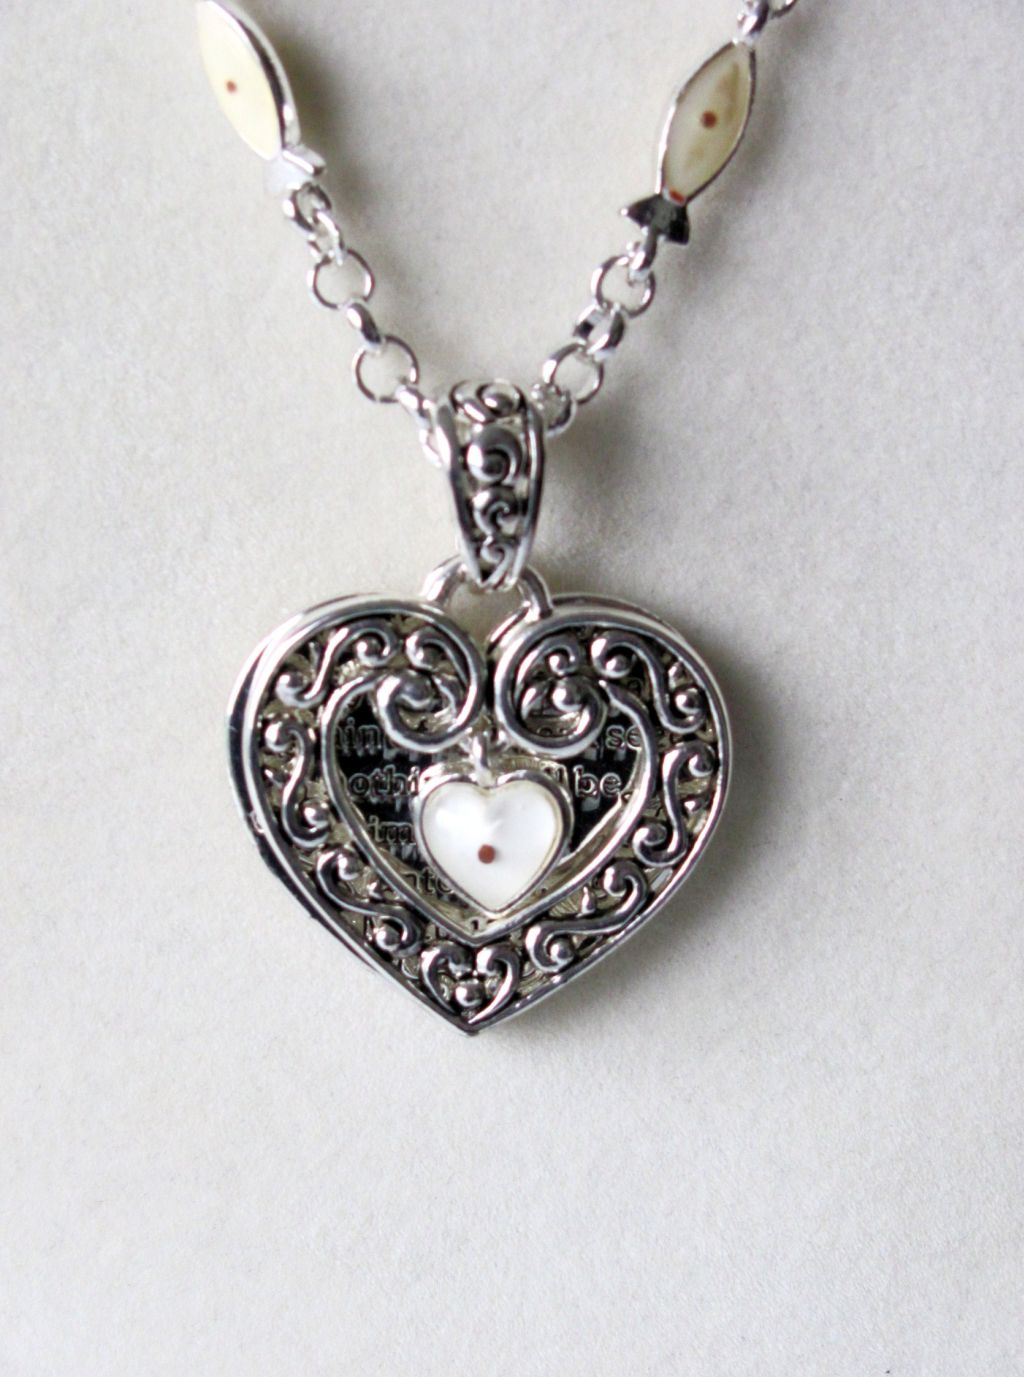 Inspirational Message Double Heart Pendant w/ Charm Necklace, Vintage Silver